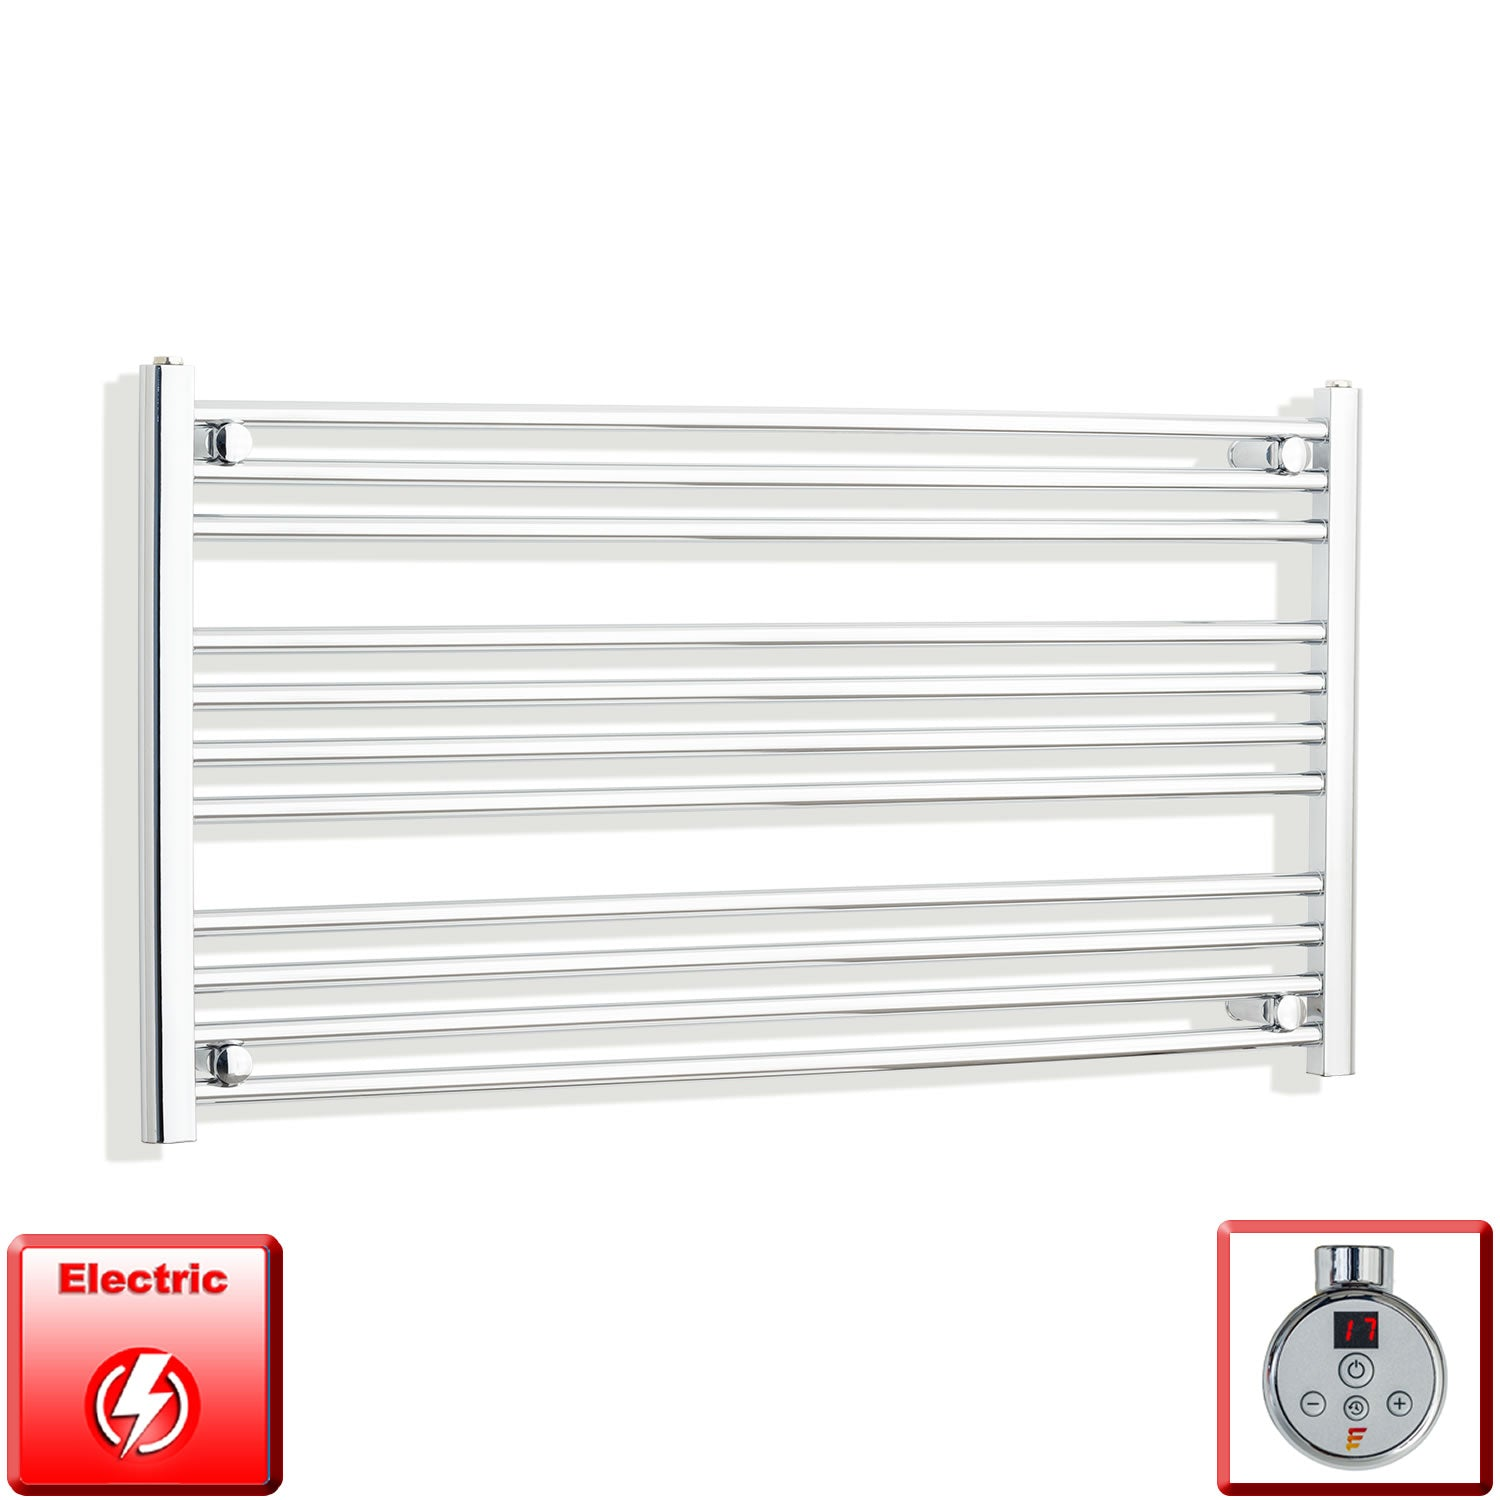 1000mm Wide 600mm High Pre-Filled Chrome Electric Towel Rail Radiator With Thermostatic DIGI Element